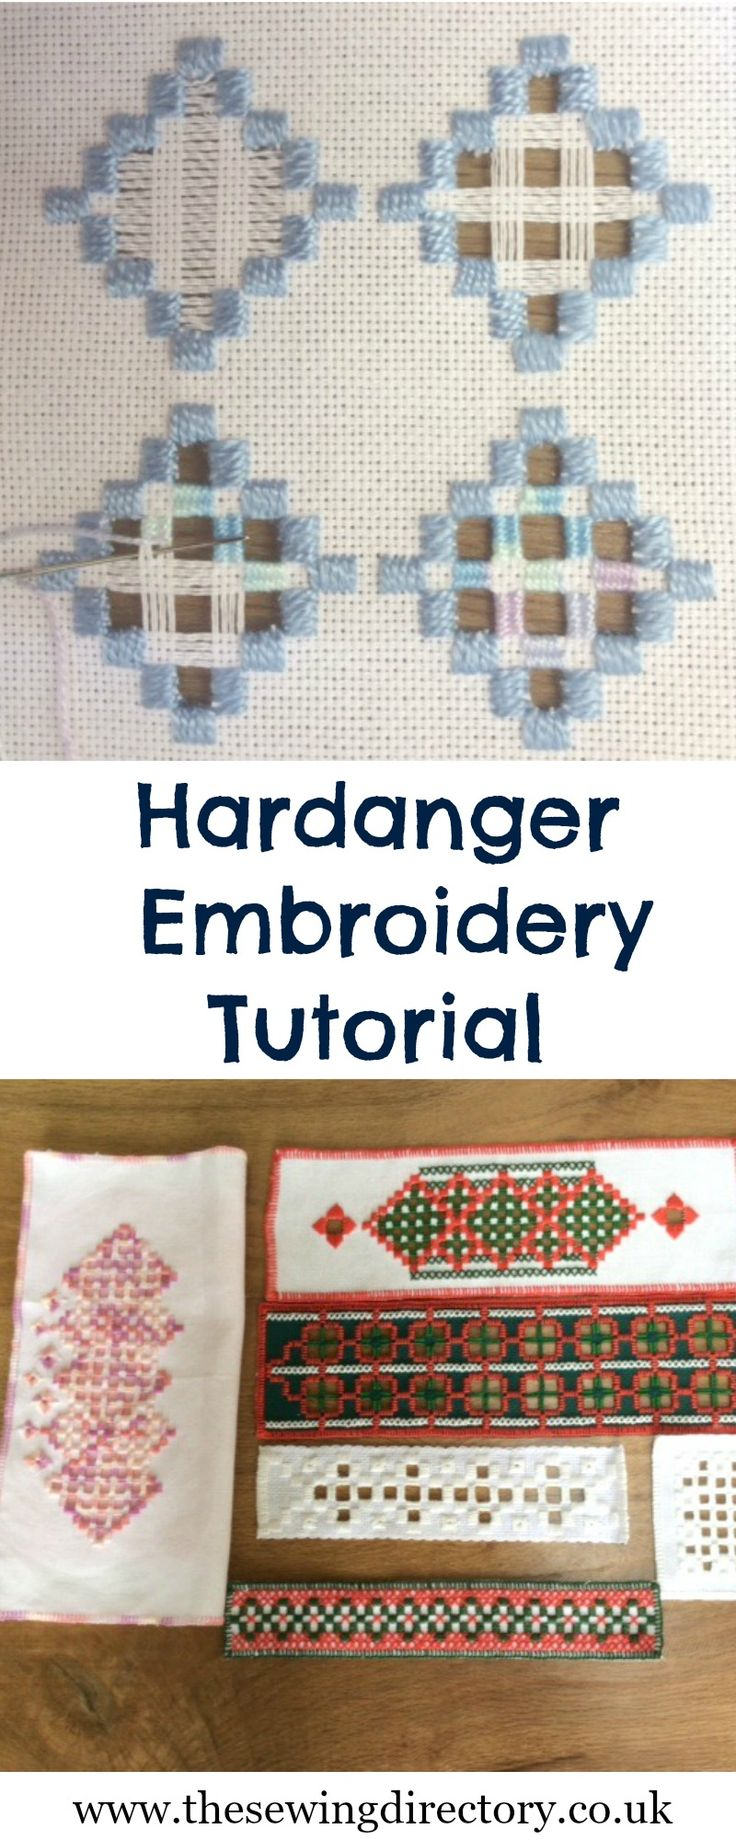 Best images about hardanger embroidery on pinterest